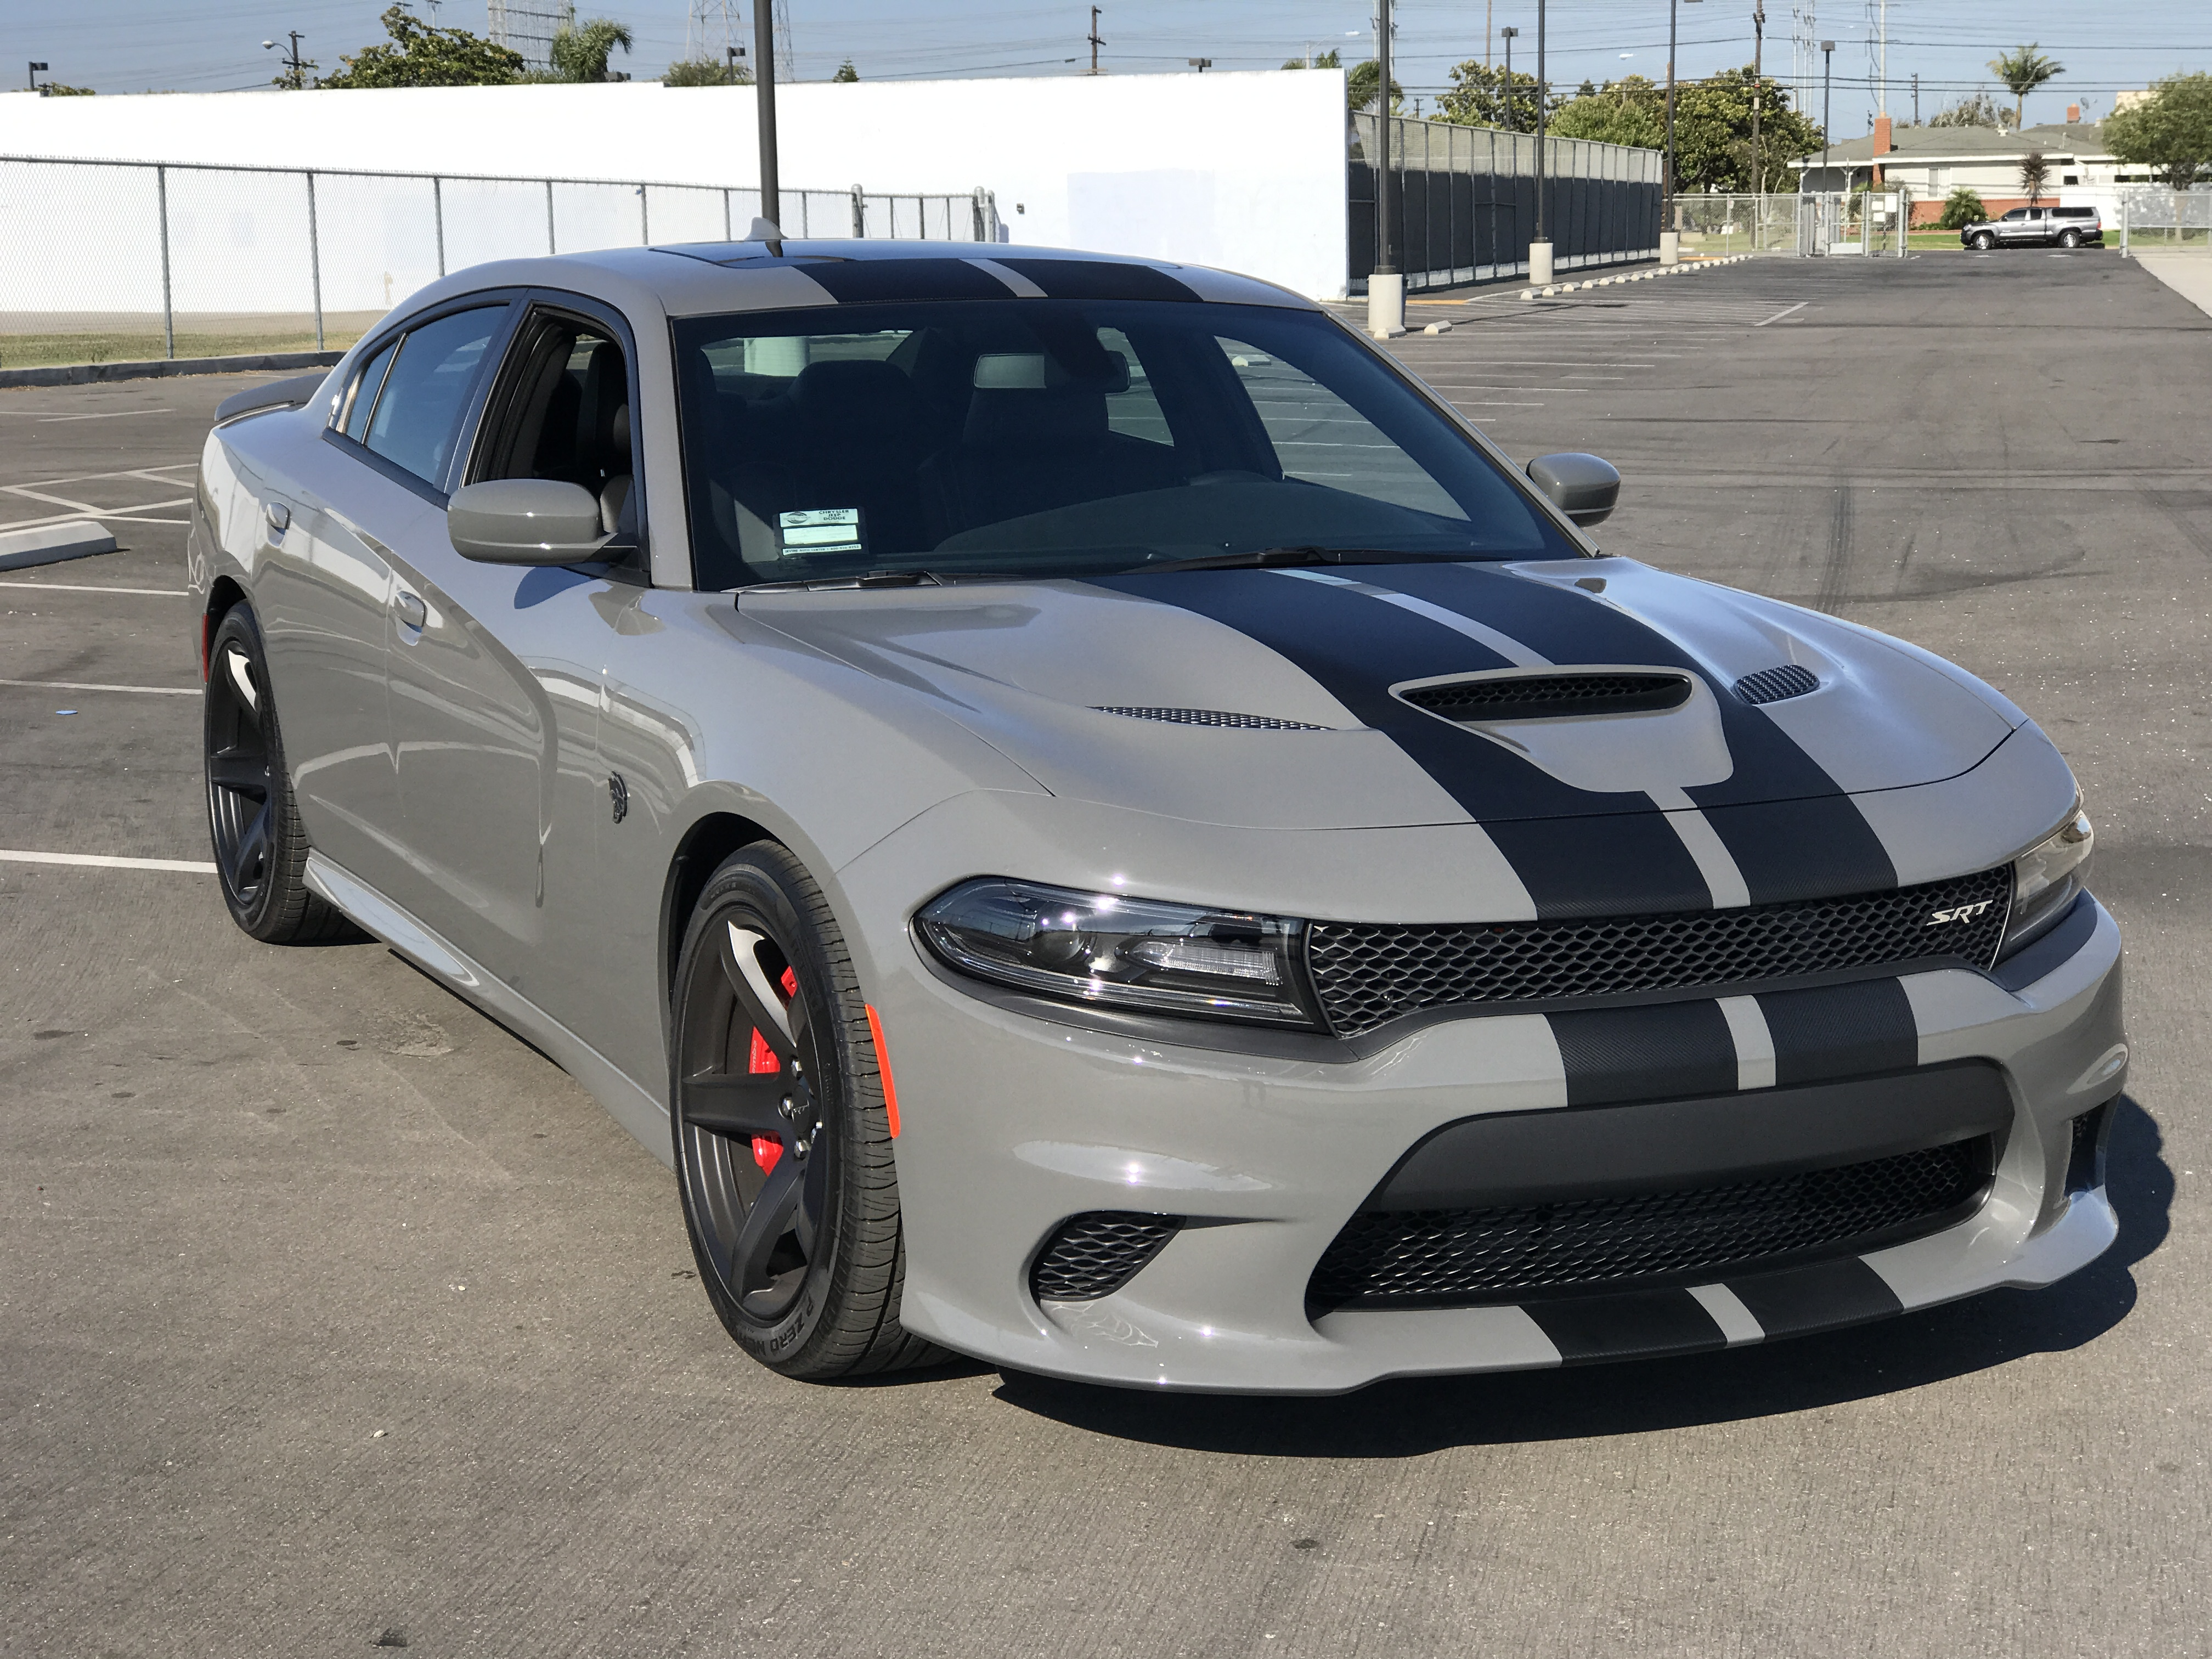 New Hellcat Charger owner! | SRT Hellcat Forum